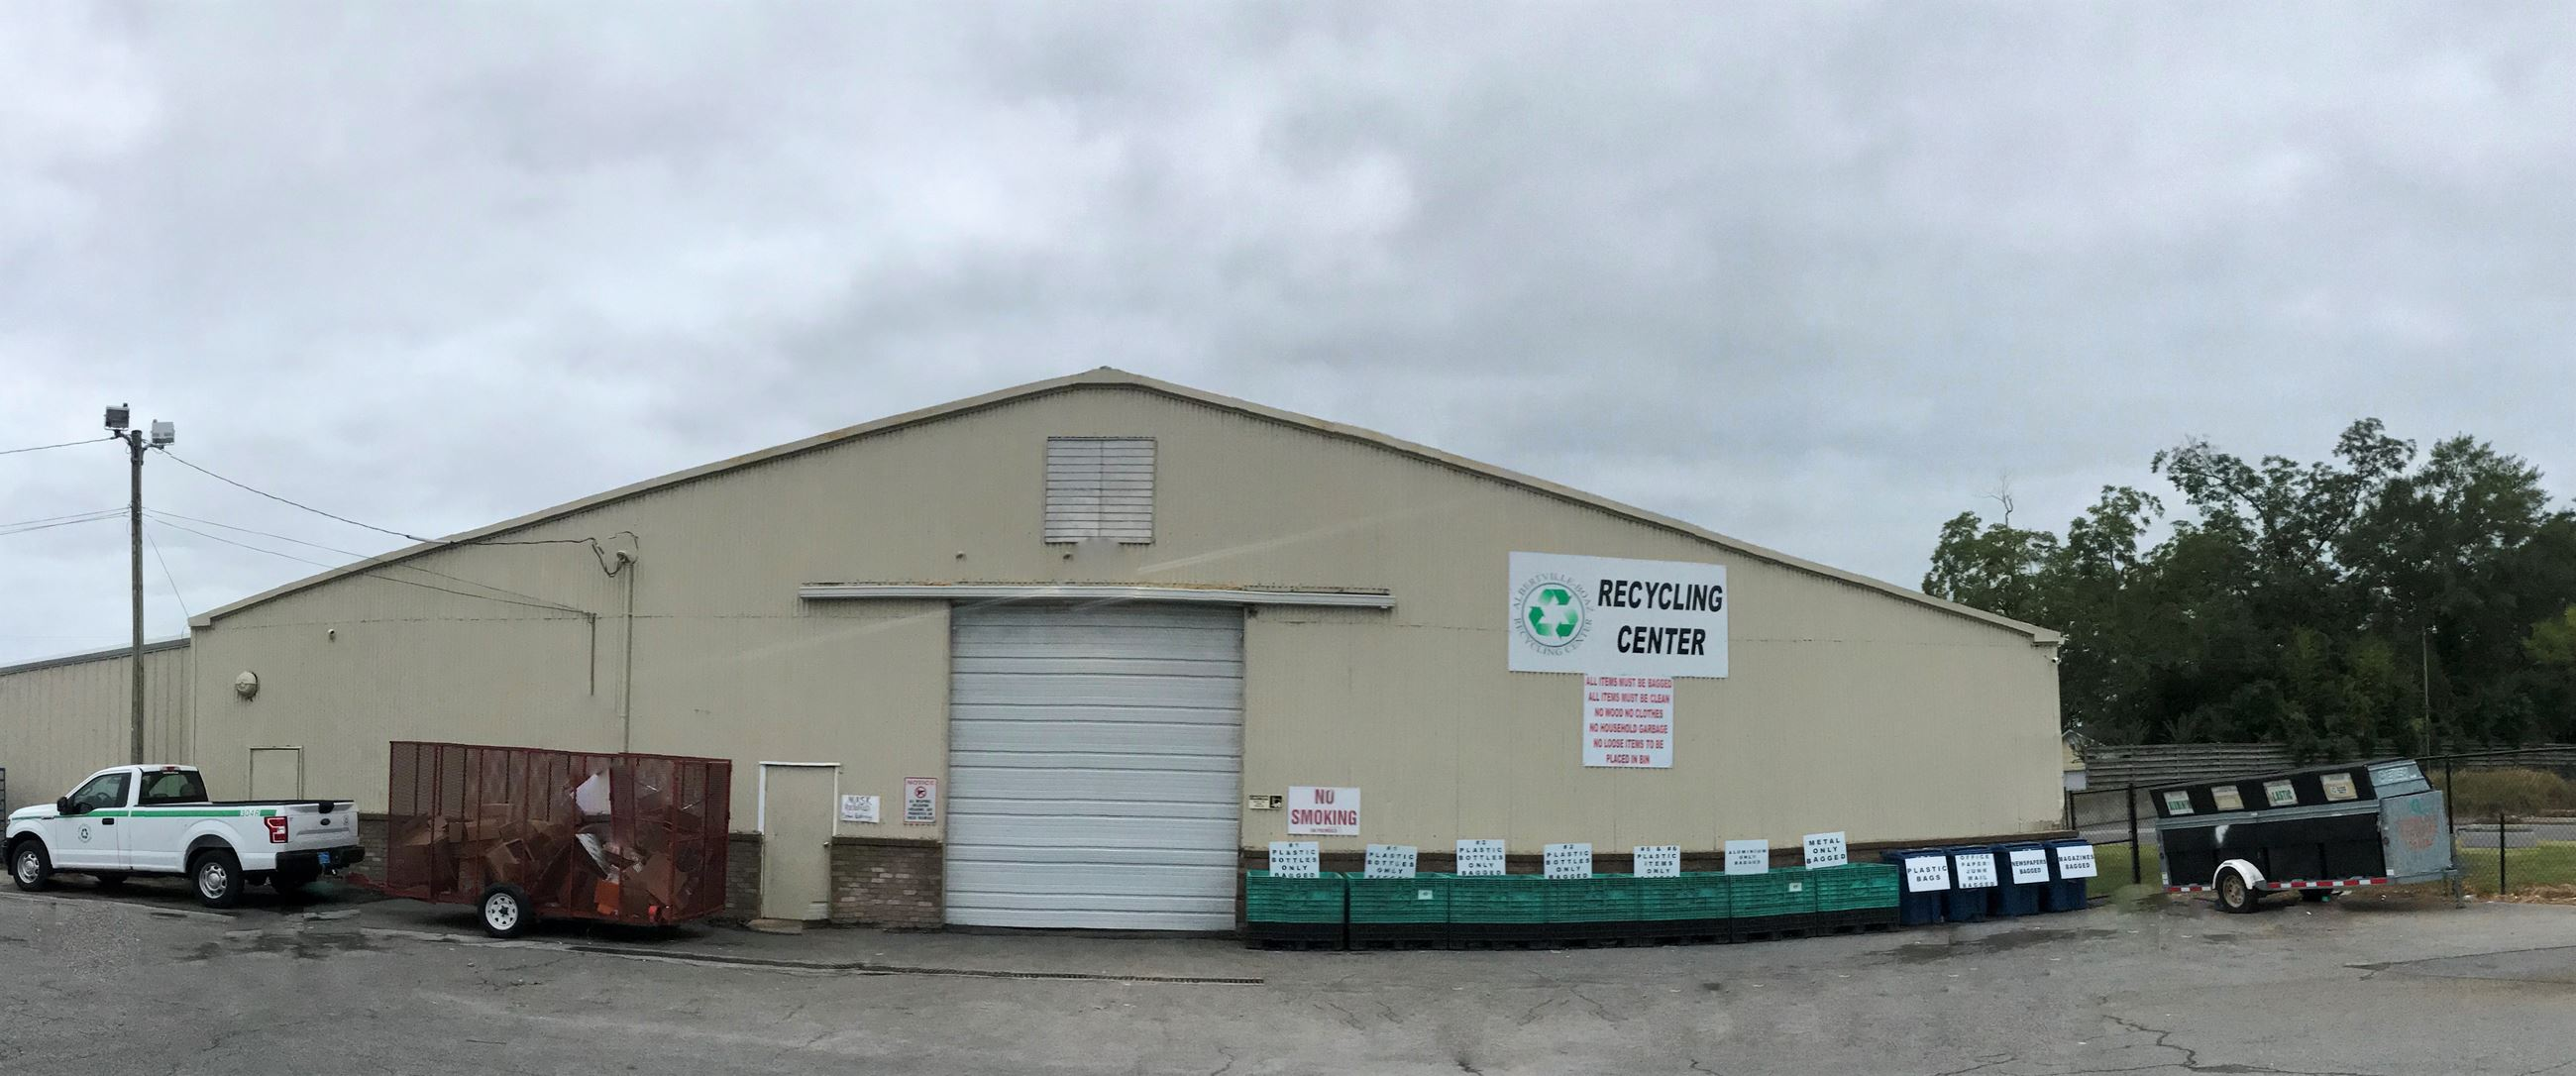 Recycle Center Front